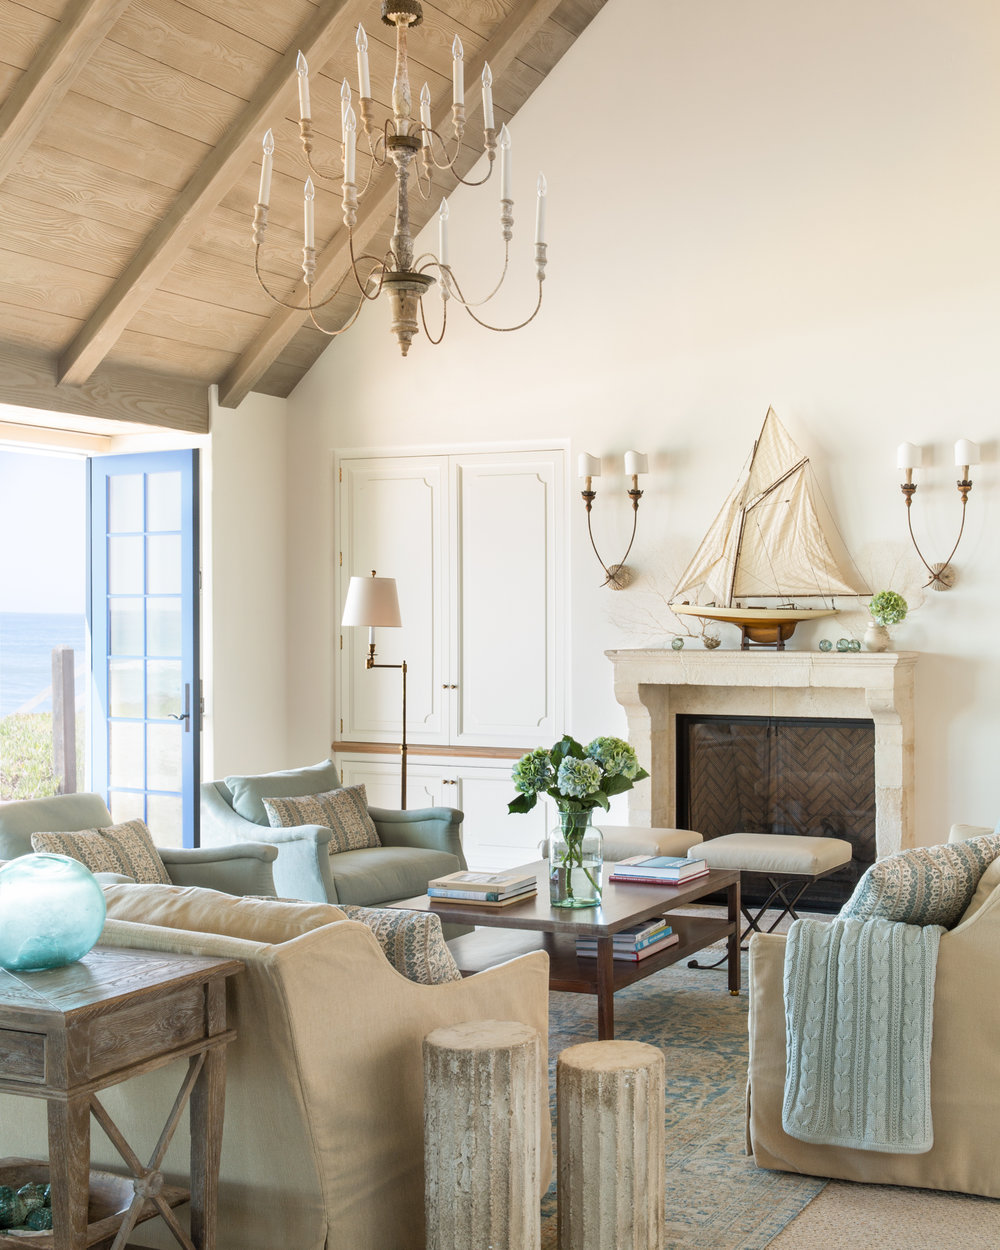 Modern French Country Decor: 12 Design Tips To Get Modern French Country Style Without